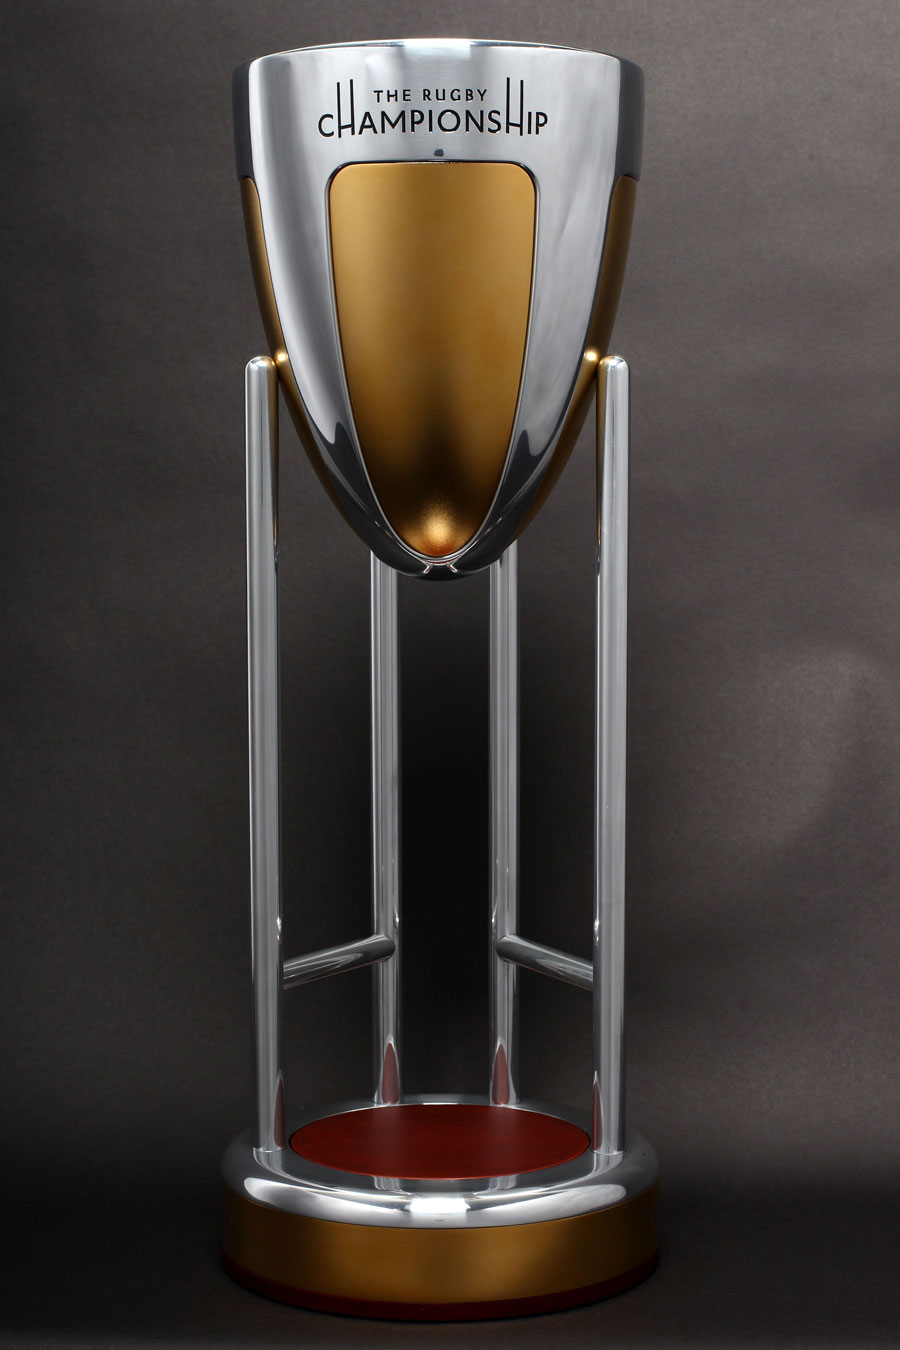 The Rugby Championship trophy is unveiled